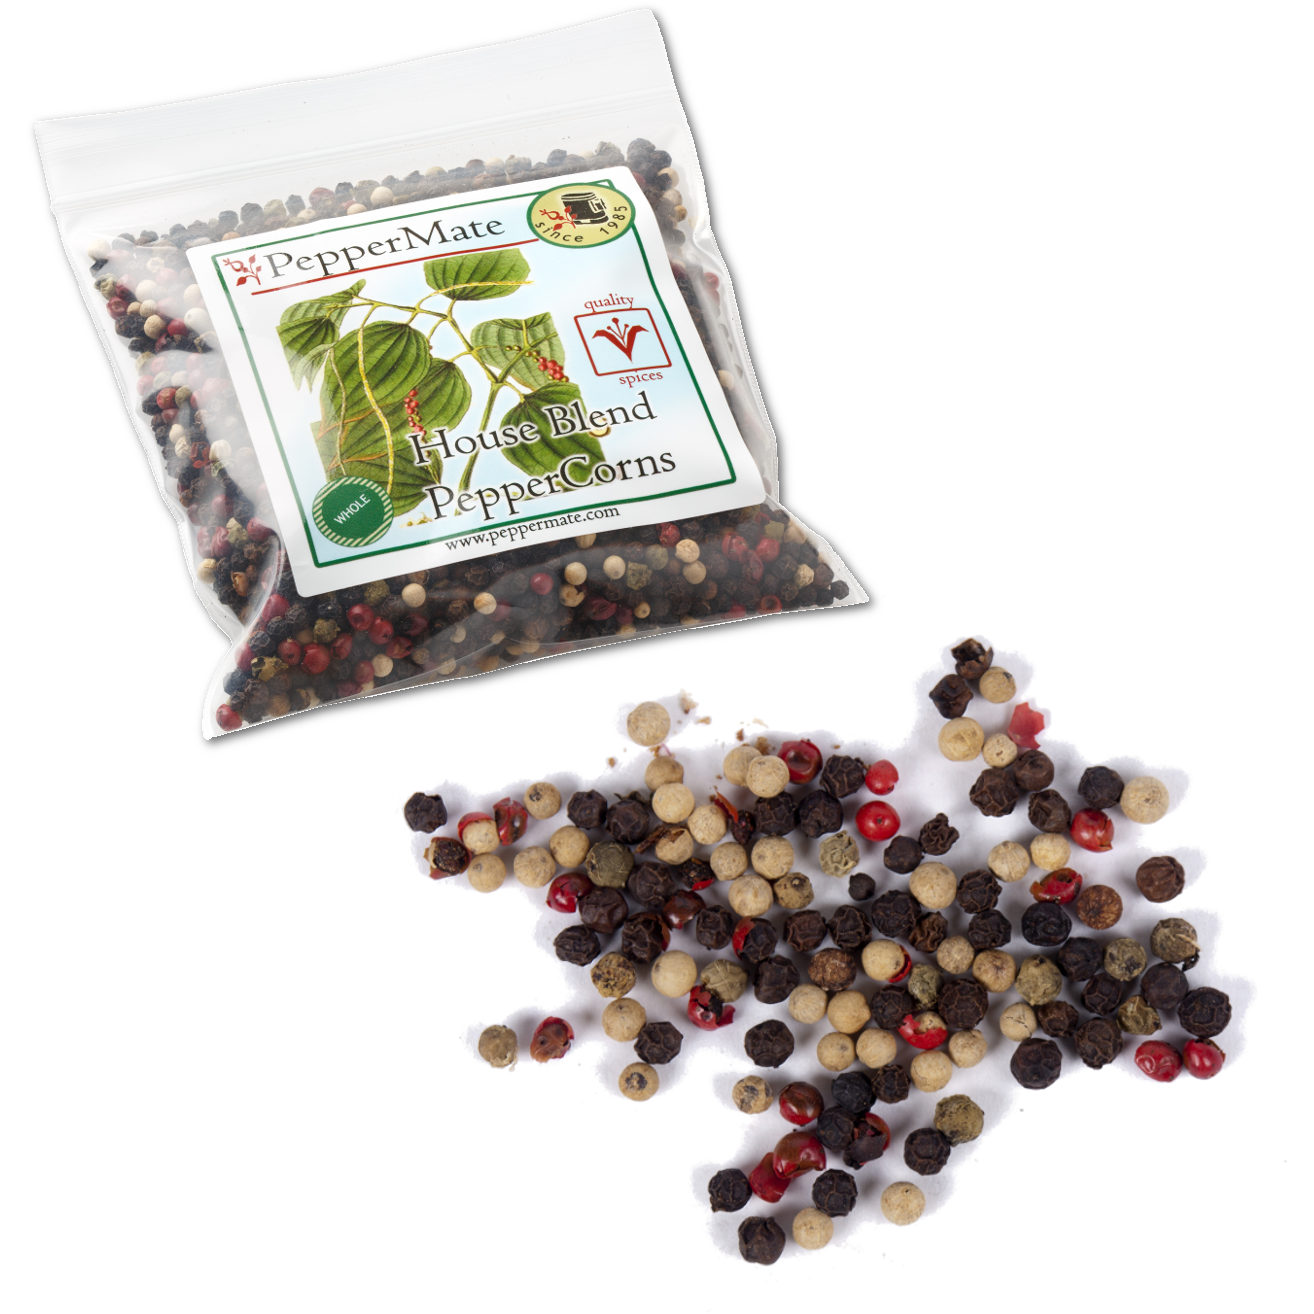 Peppercorns House Blend PM